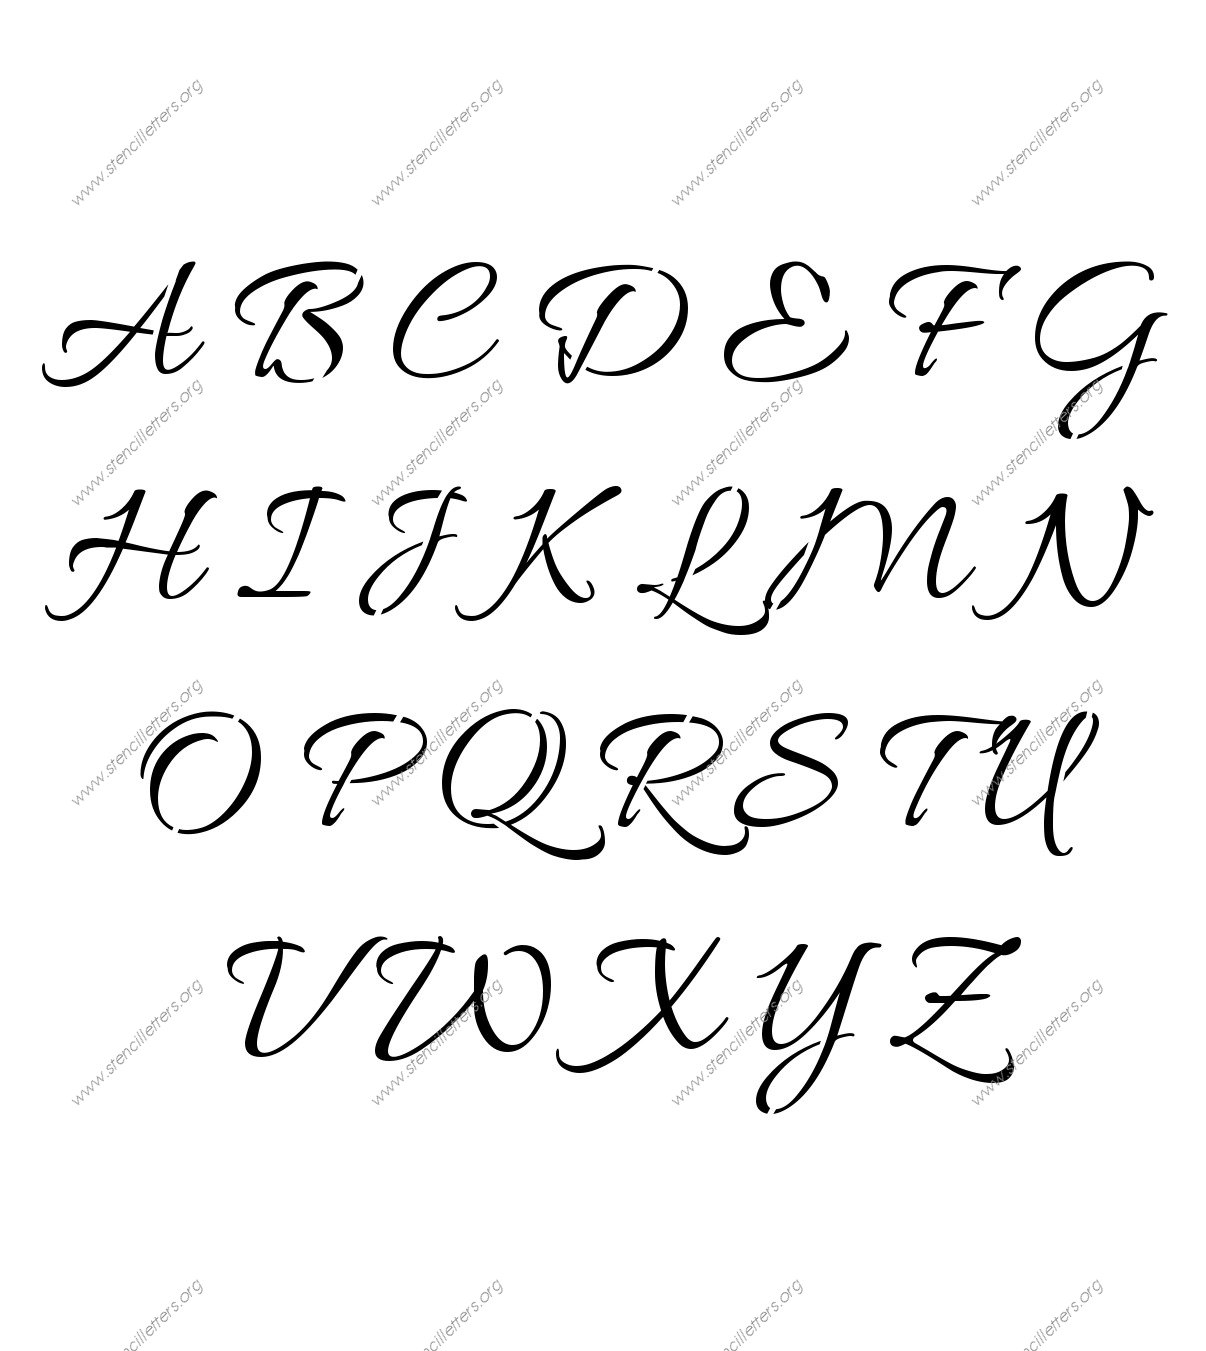 Connected cursive made to order custom stencils stencil letters org connected cursive a to z alphabet stencils thecheapjerseys Image collections